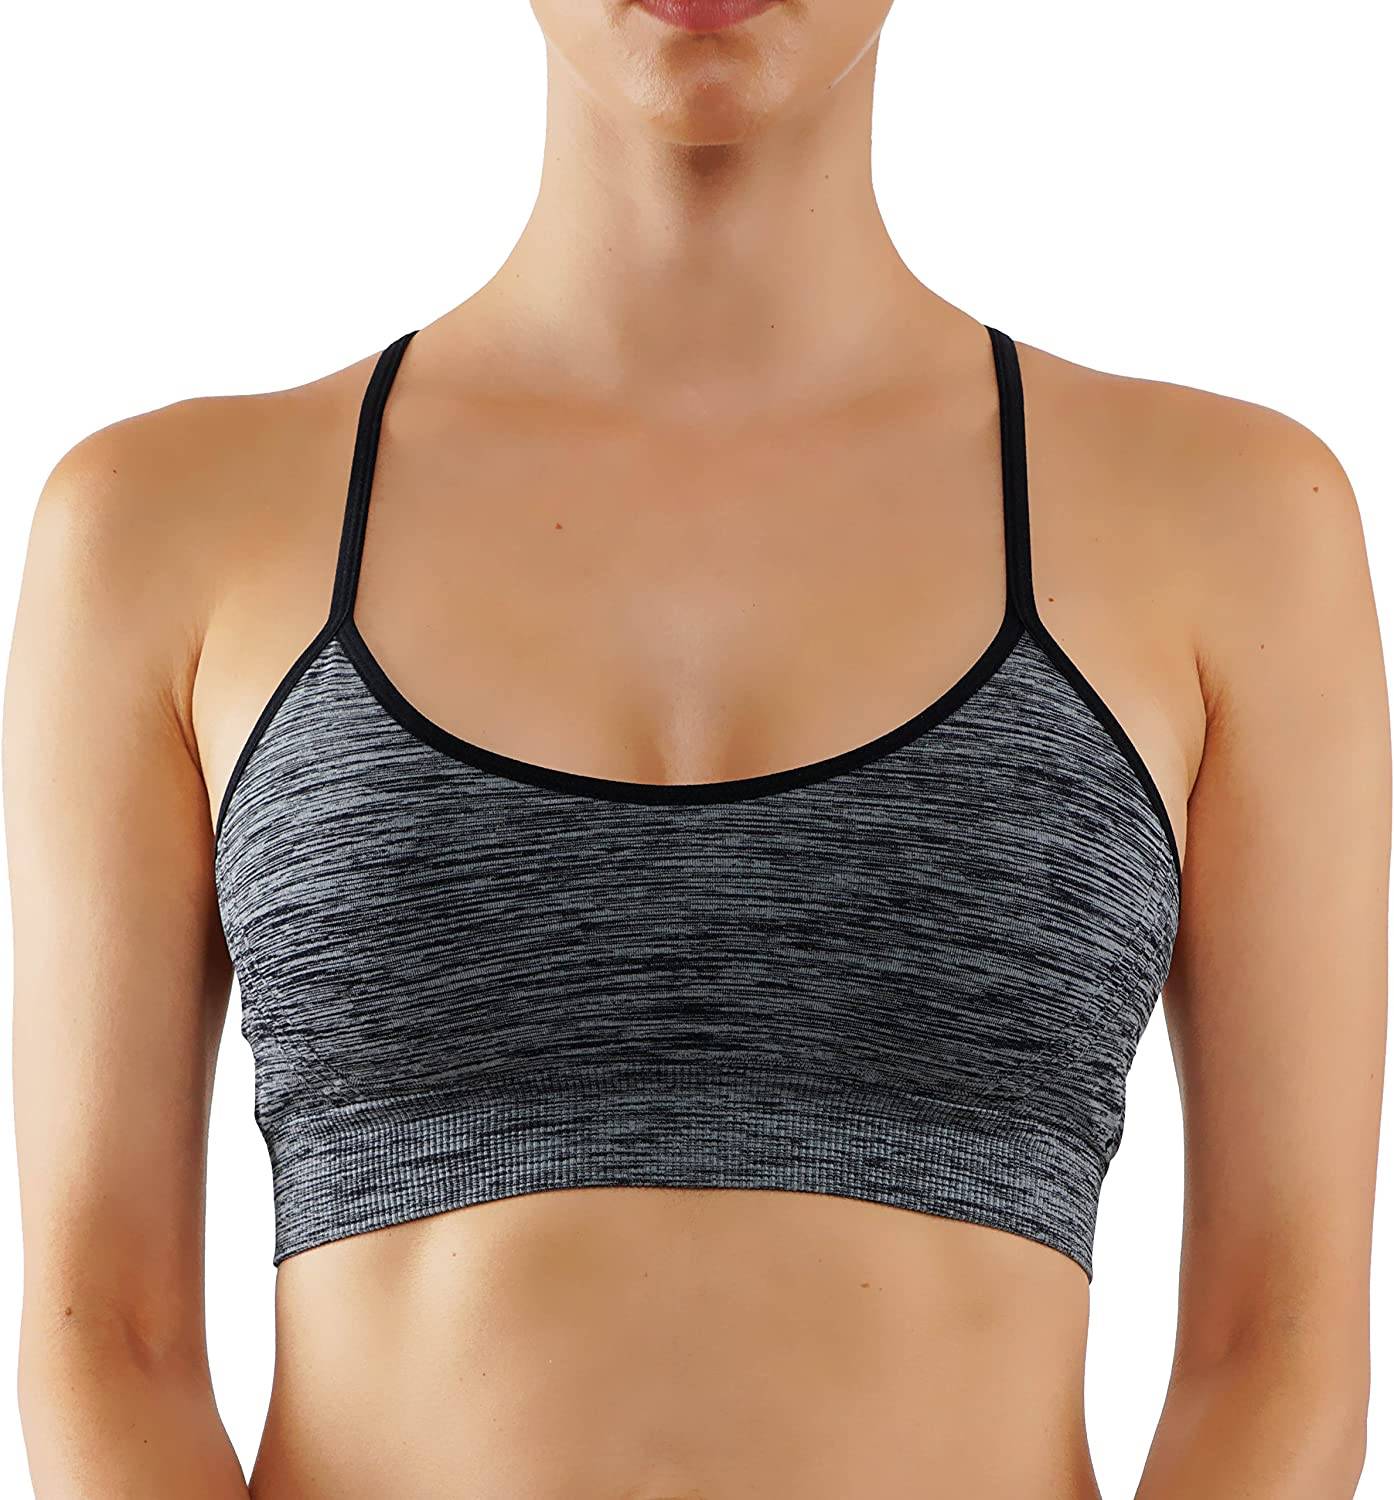 Bise Women's Sports Bra Yoga Top Padding Workout Middle Support Active Wear